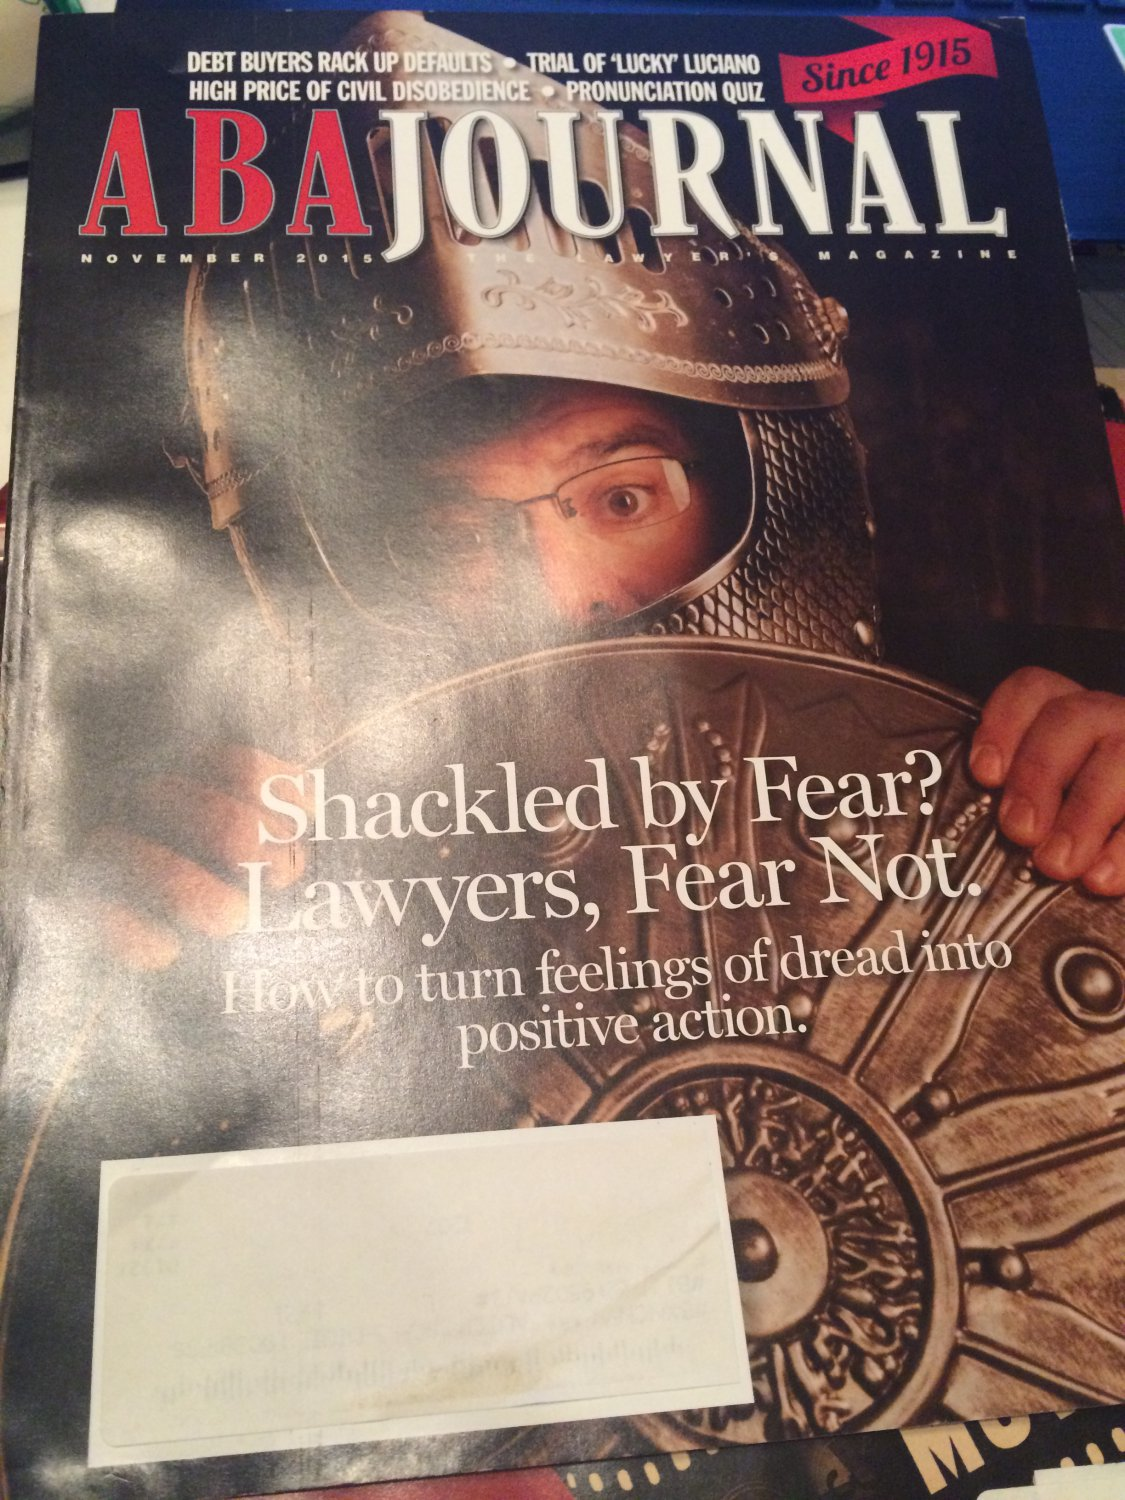 ABA Journal: The Lawyer's Magazine, Vol. 101, November 2015 by American Bar Association